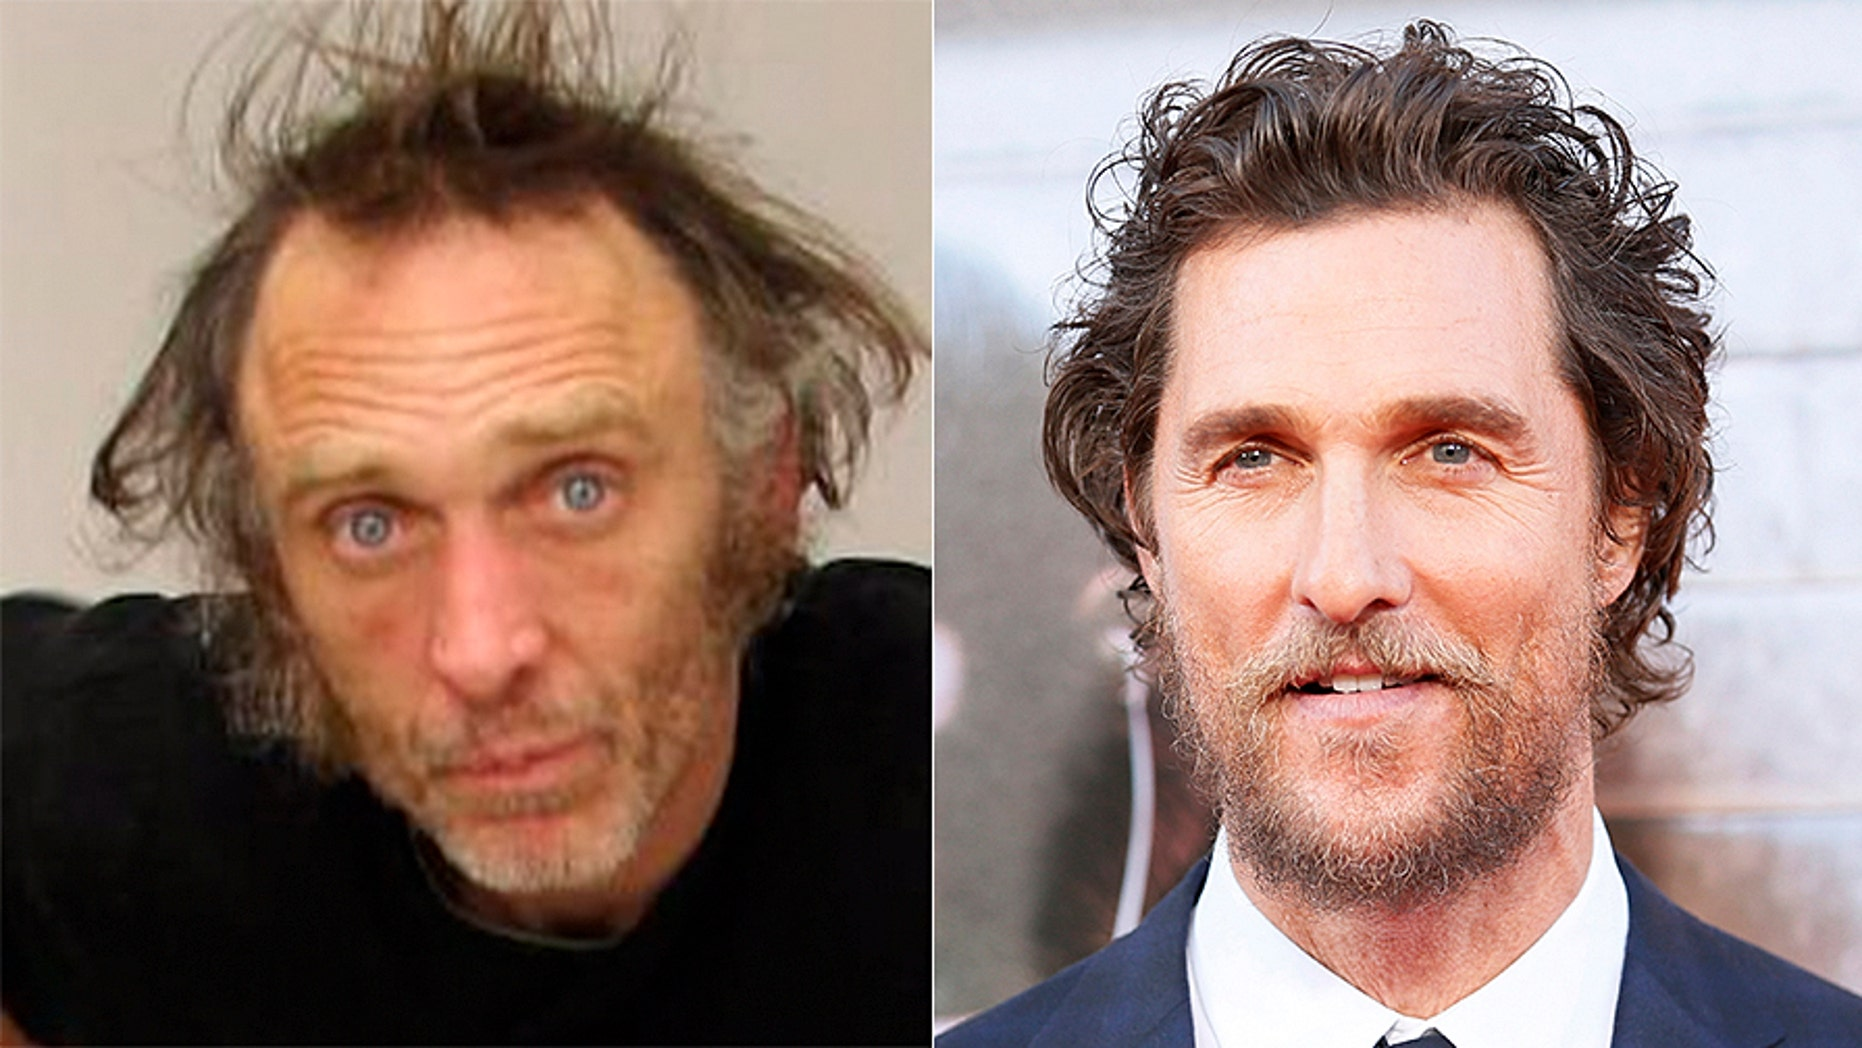 Troy Miller was arrested after allegedly stealing a car. He initially told cops he was Matthew McConaughey.